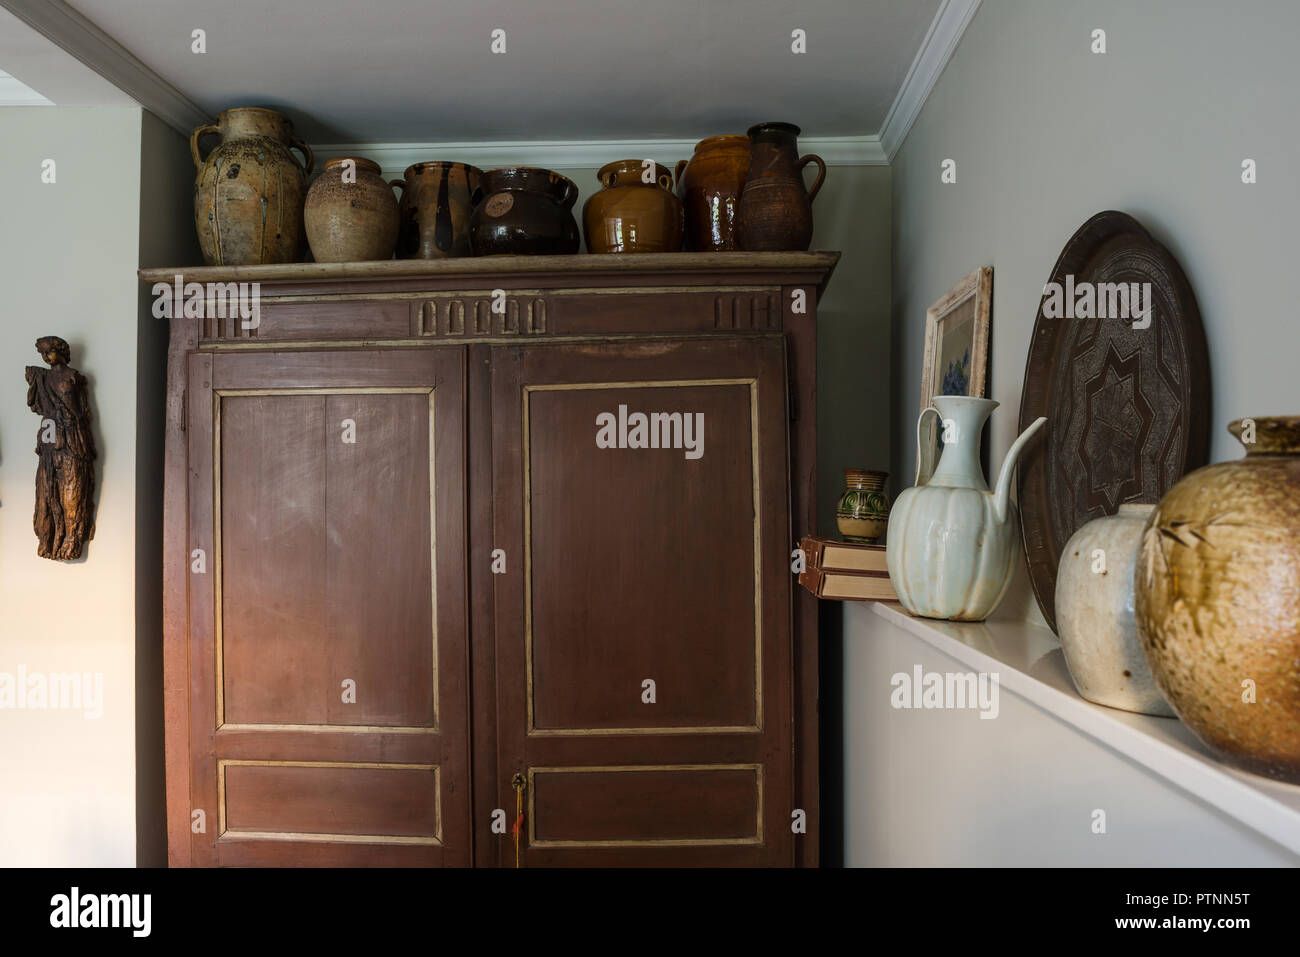 French salt-glazed cruches jugs are arranged along the top of the rustic French painted armoire - Stock Image